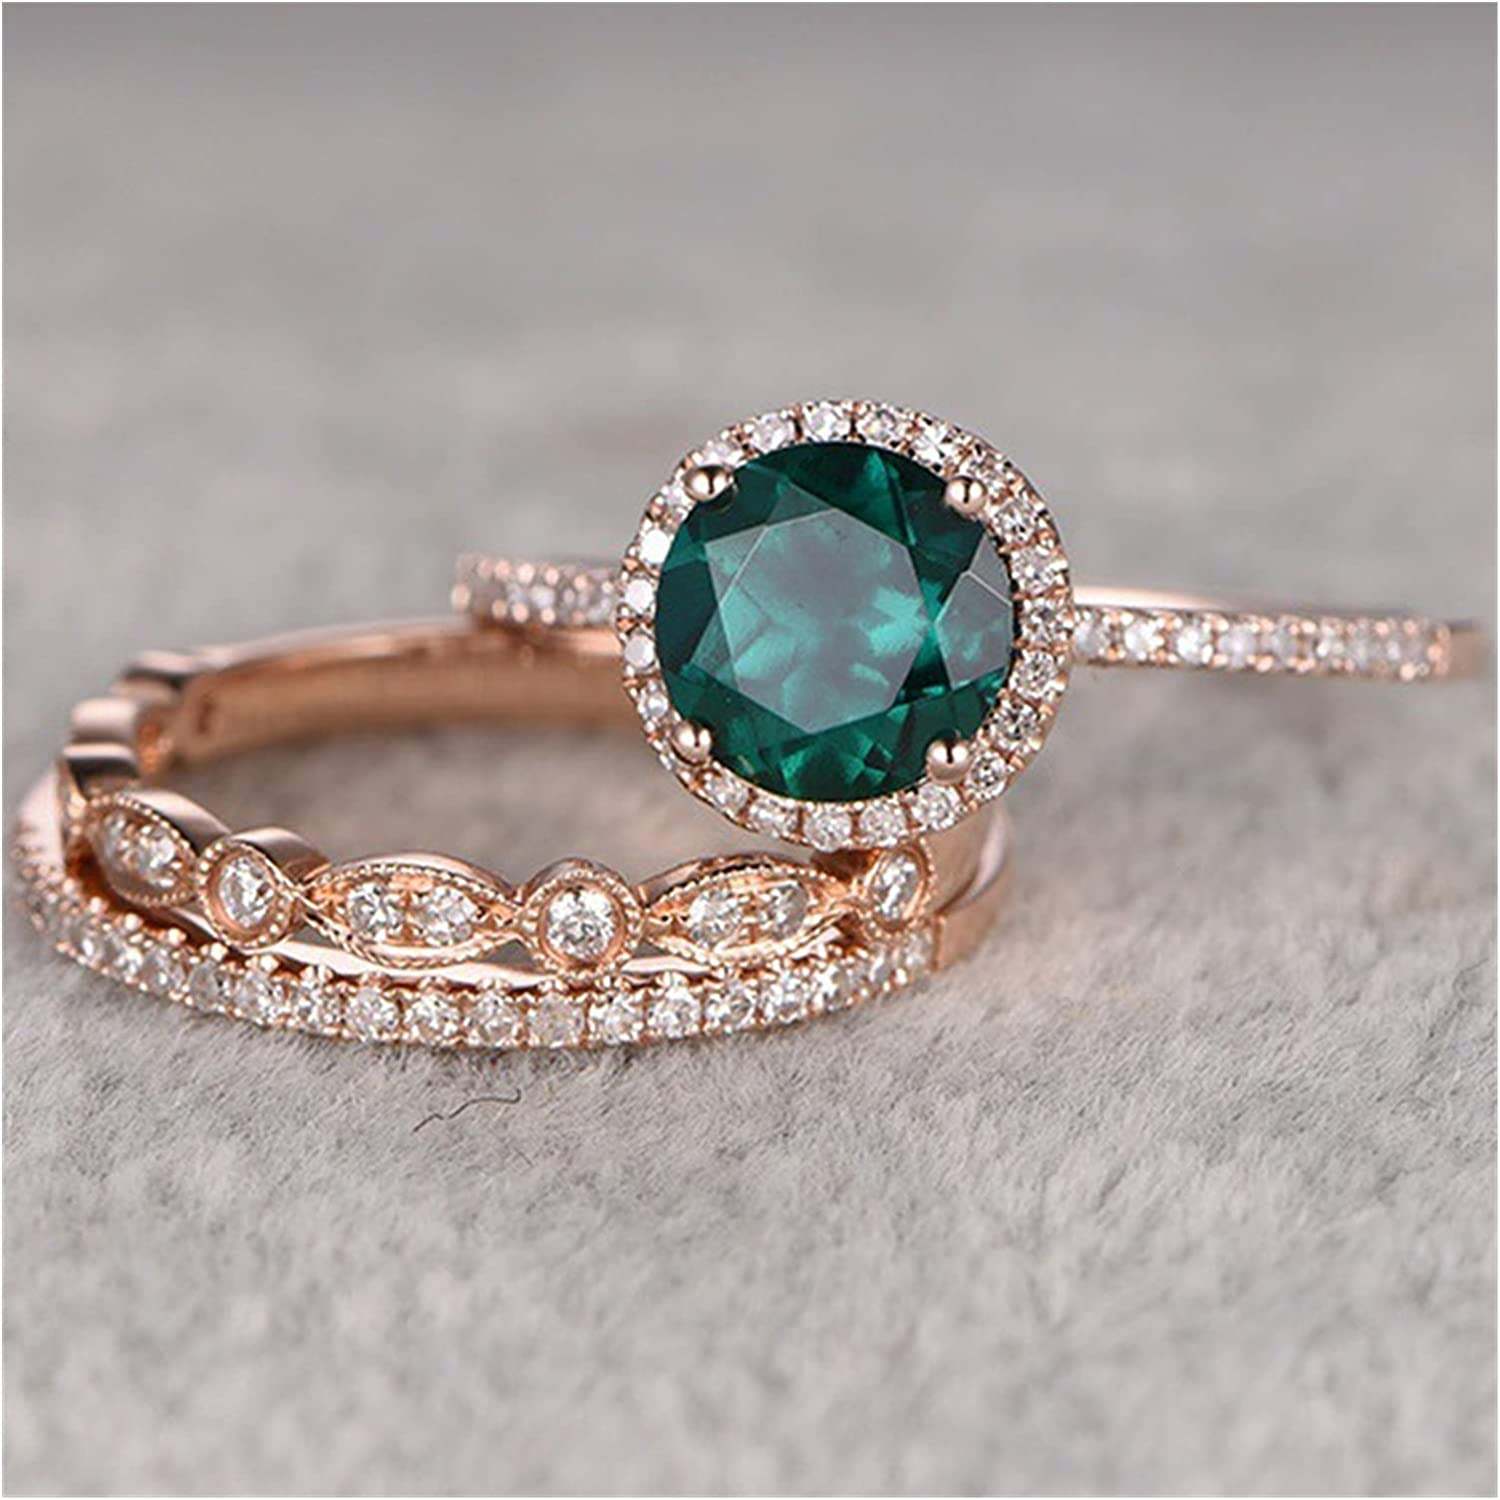 Complete New popularity Free Shipping Ring 3 Pcs Set Ladies Luxury Rings Green Cubic Crystal Zirconia